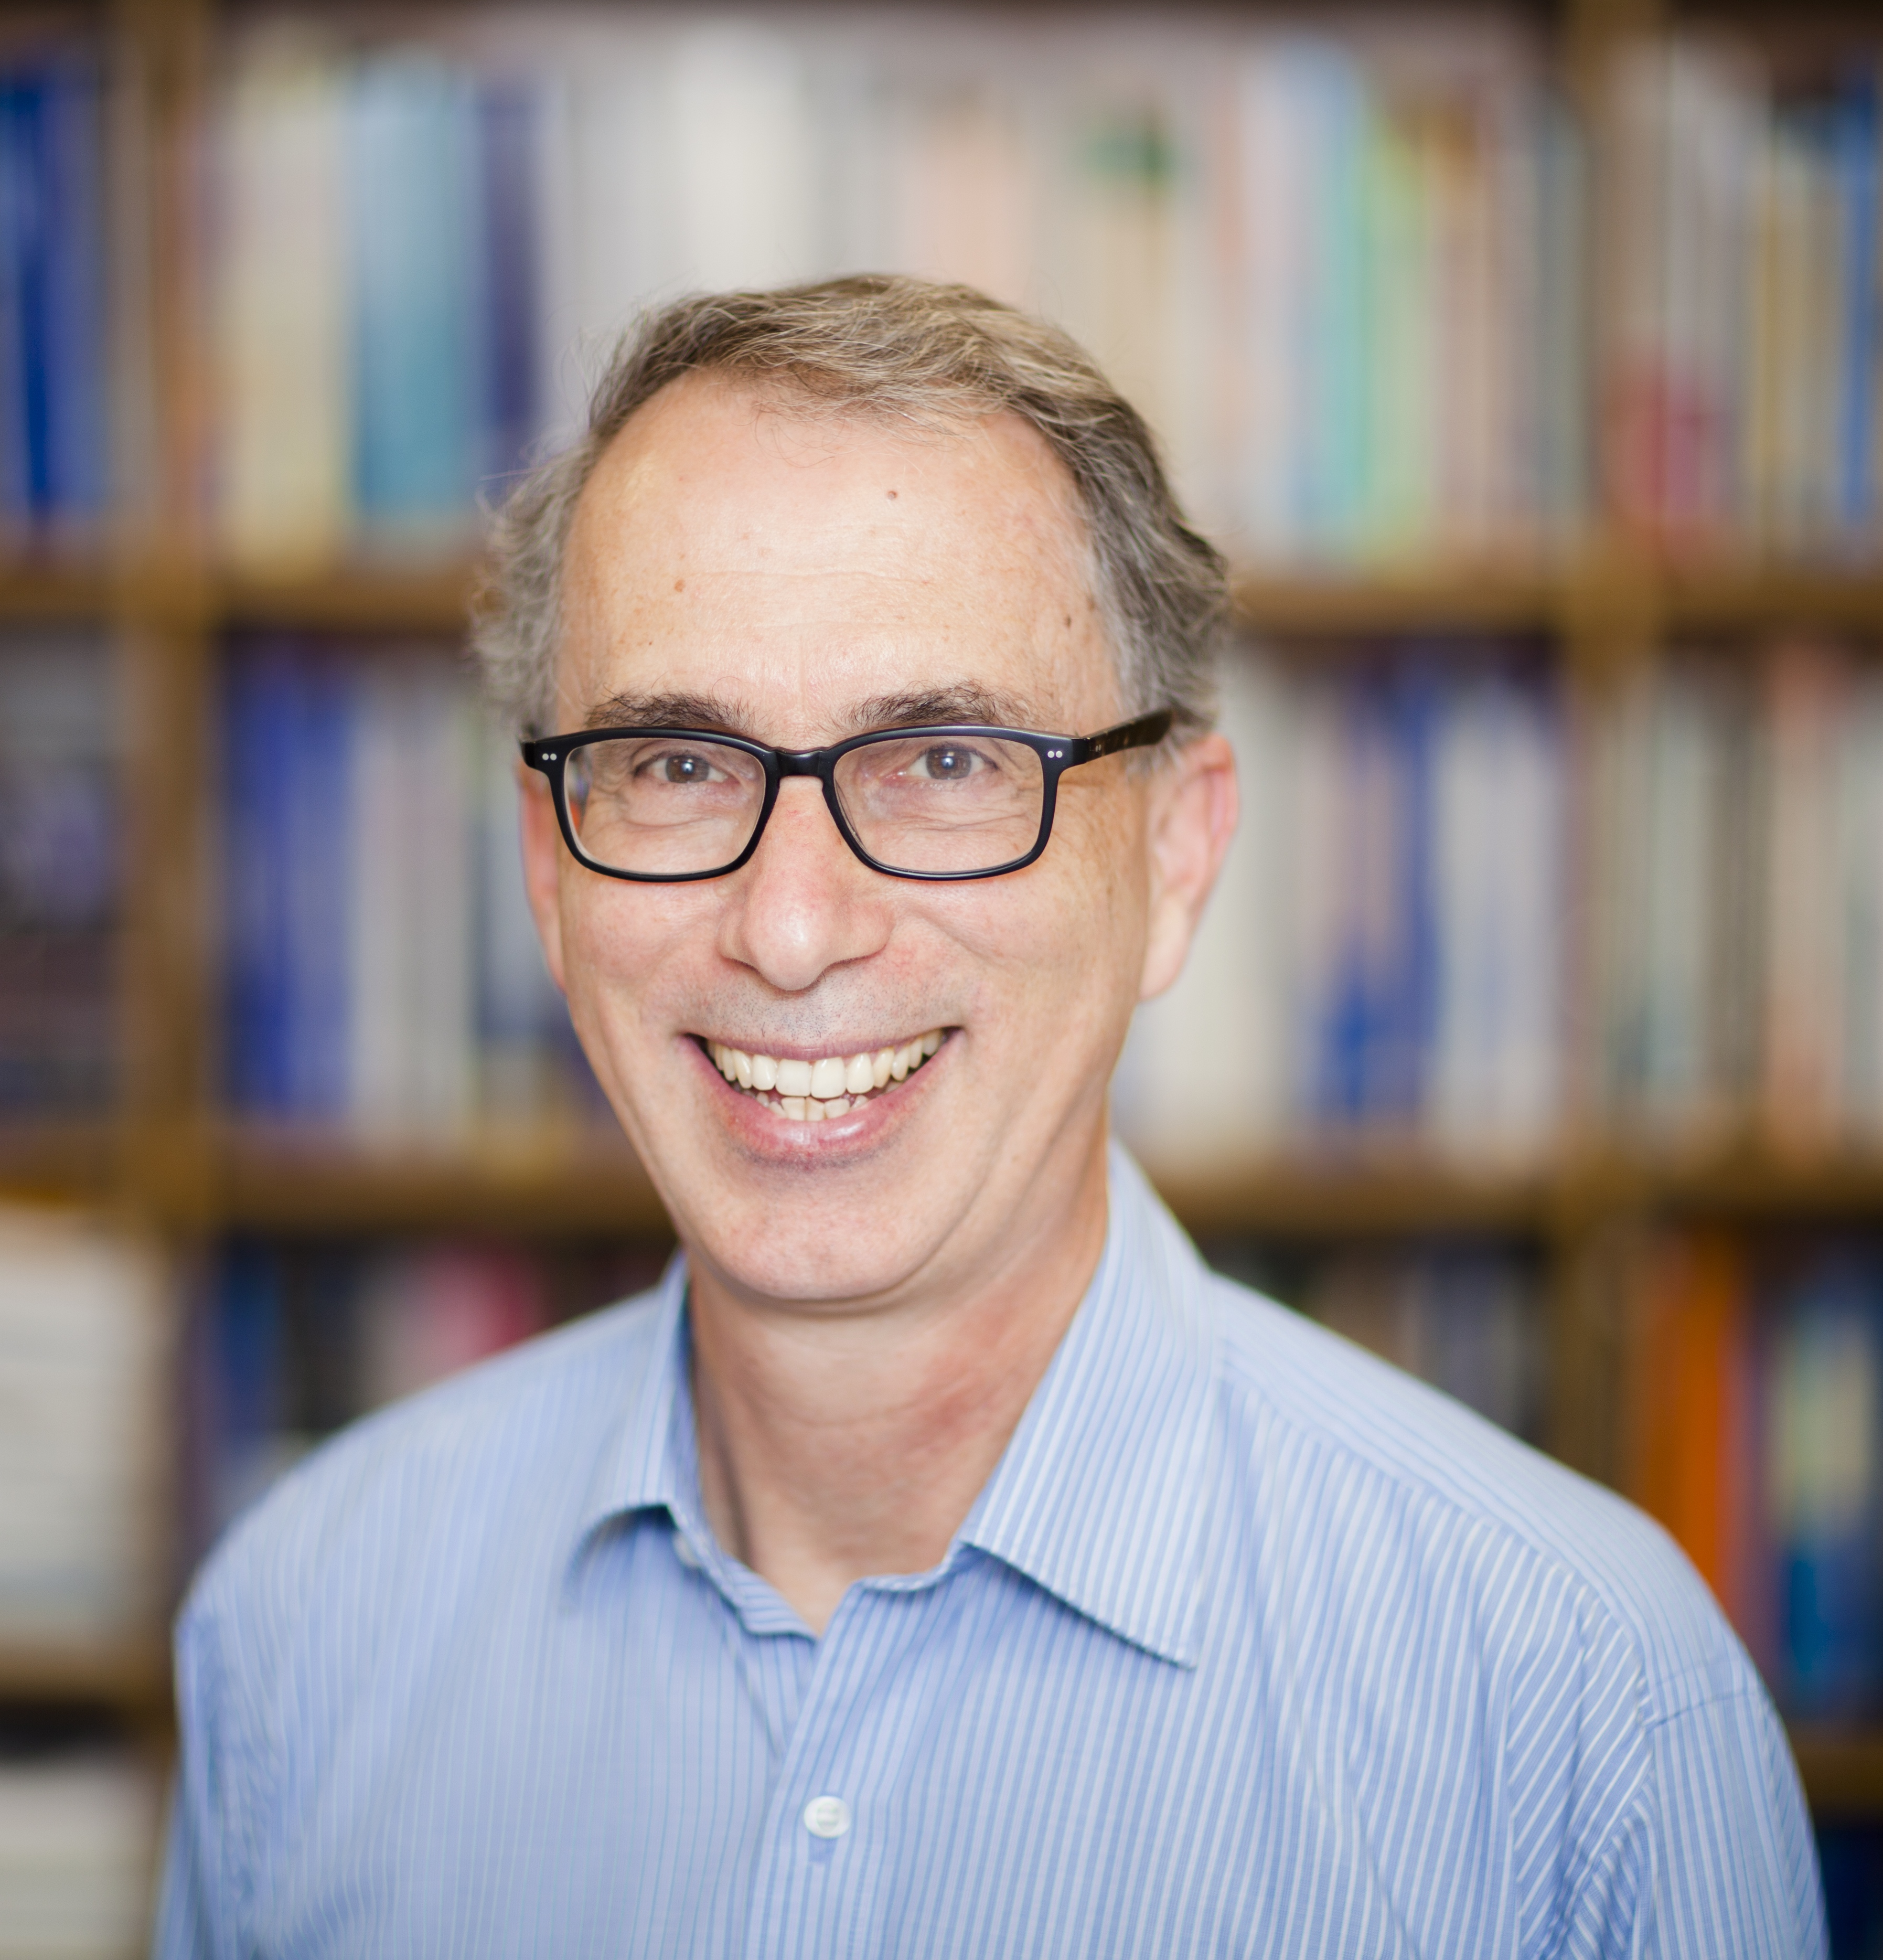 profile picture of Dr David karoly